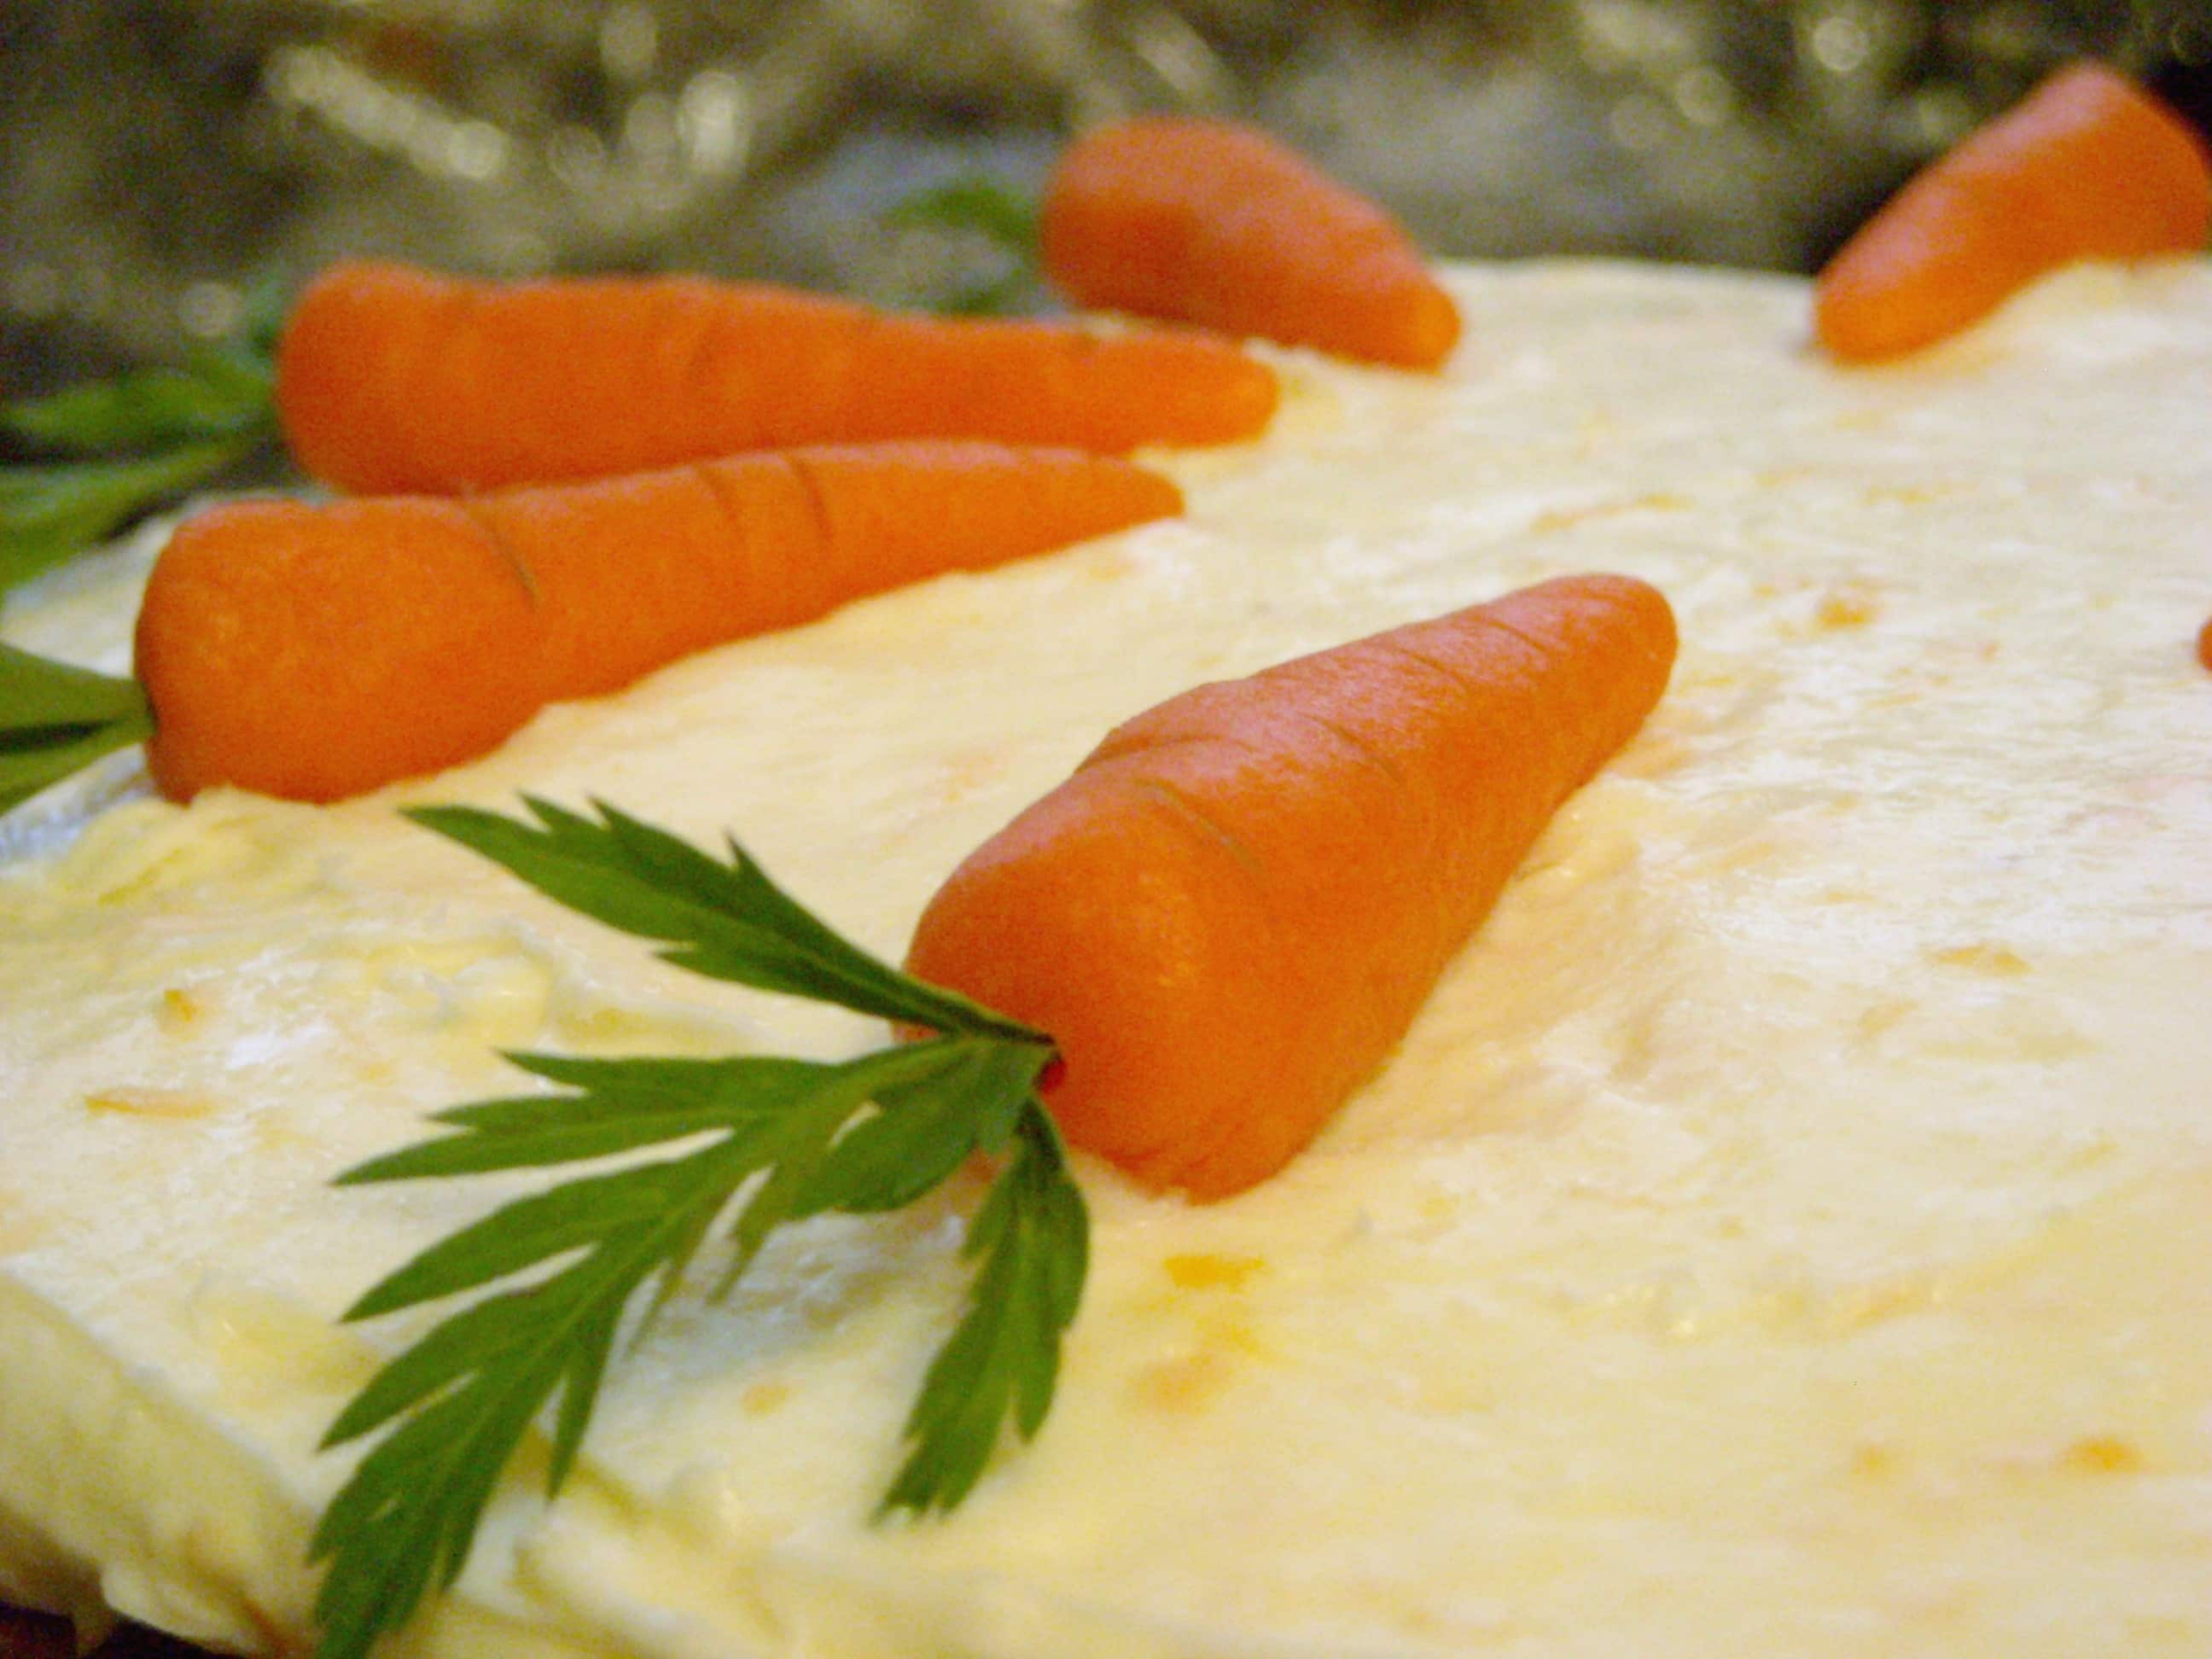 This sweet recipe for orange cream cheese frosting and marzipan carrots. It's the perfect topping for brownies, cake or cookies.